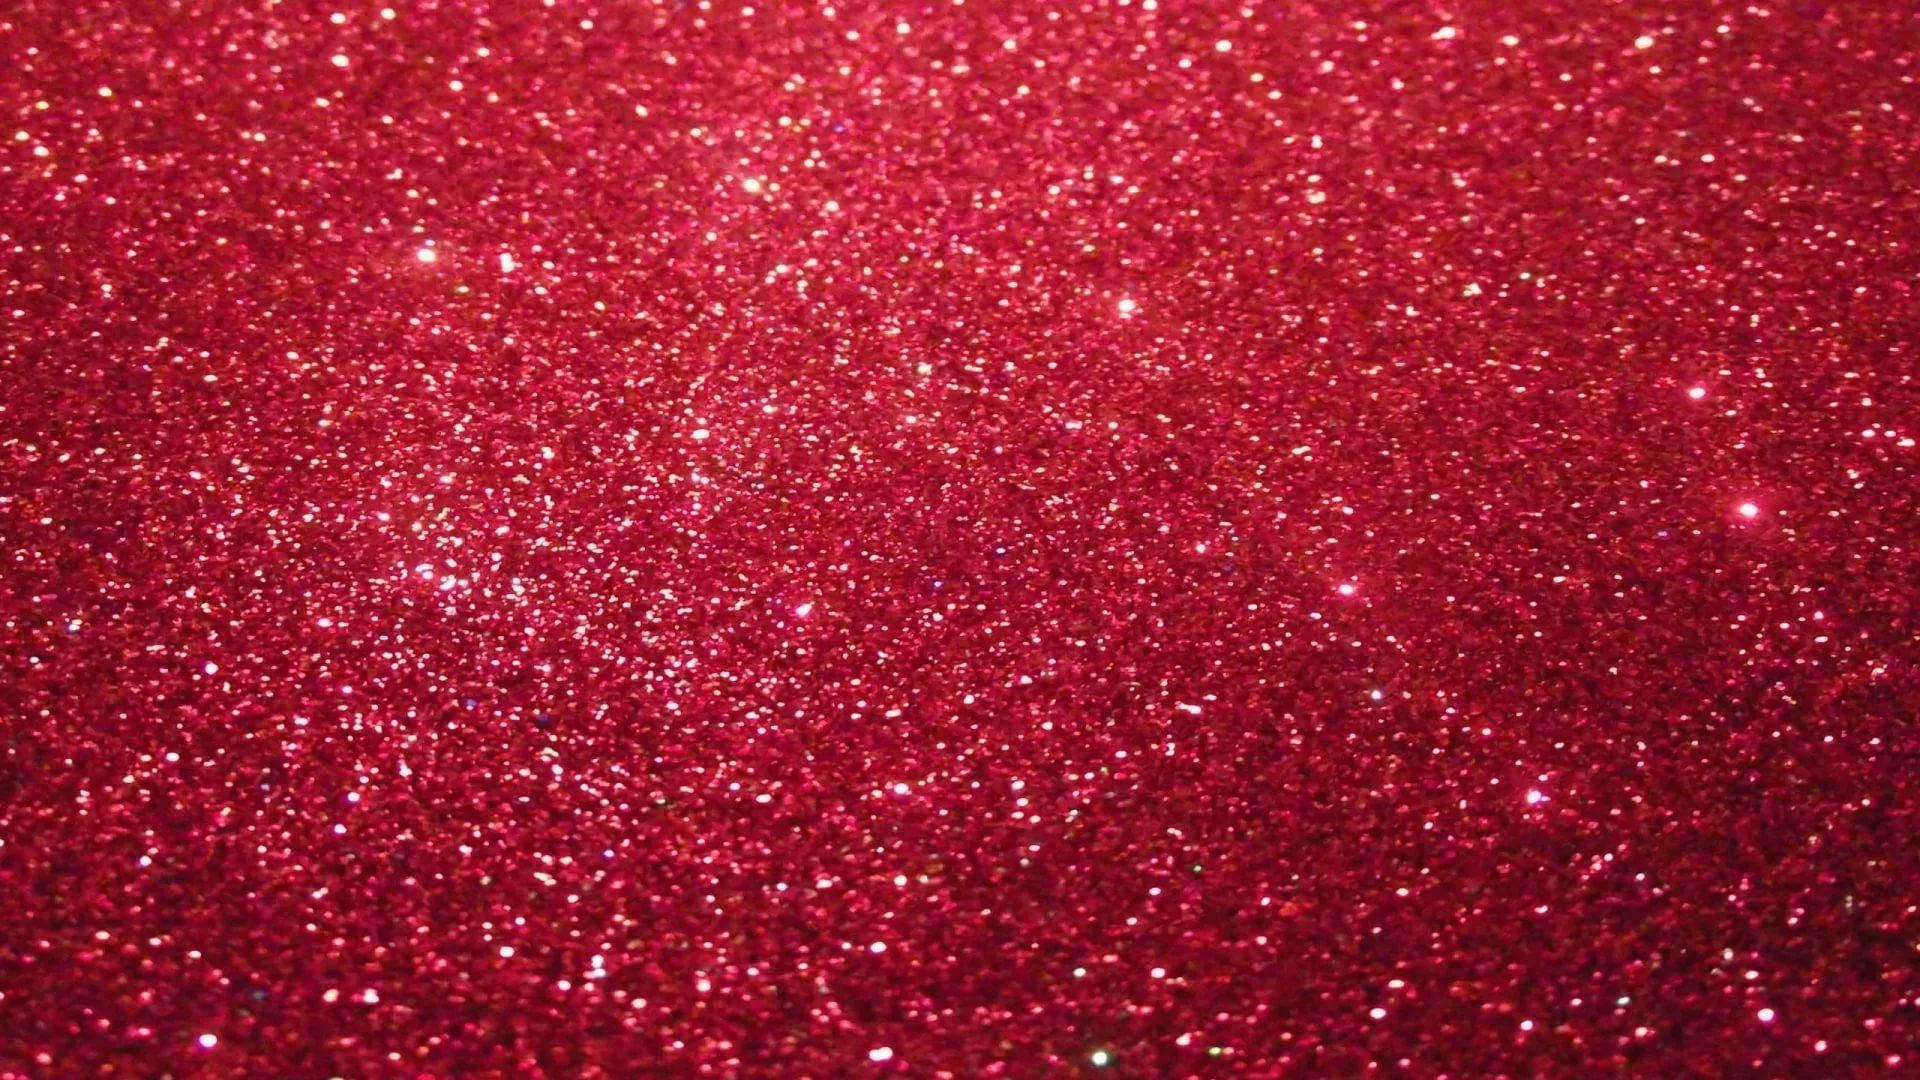 Glitter hd desktop wallpaper